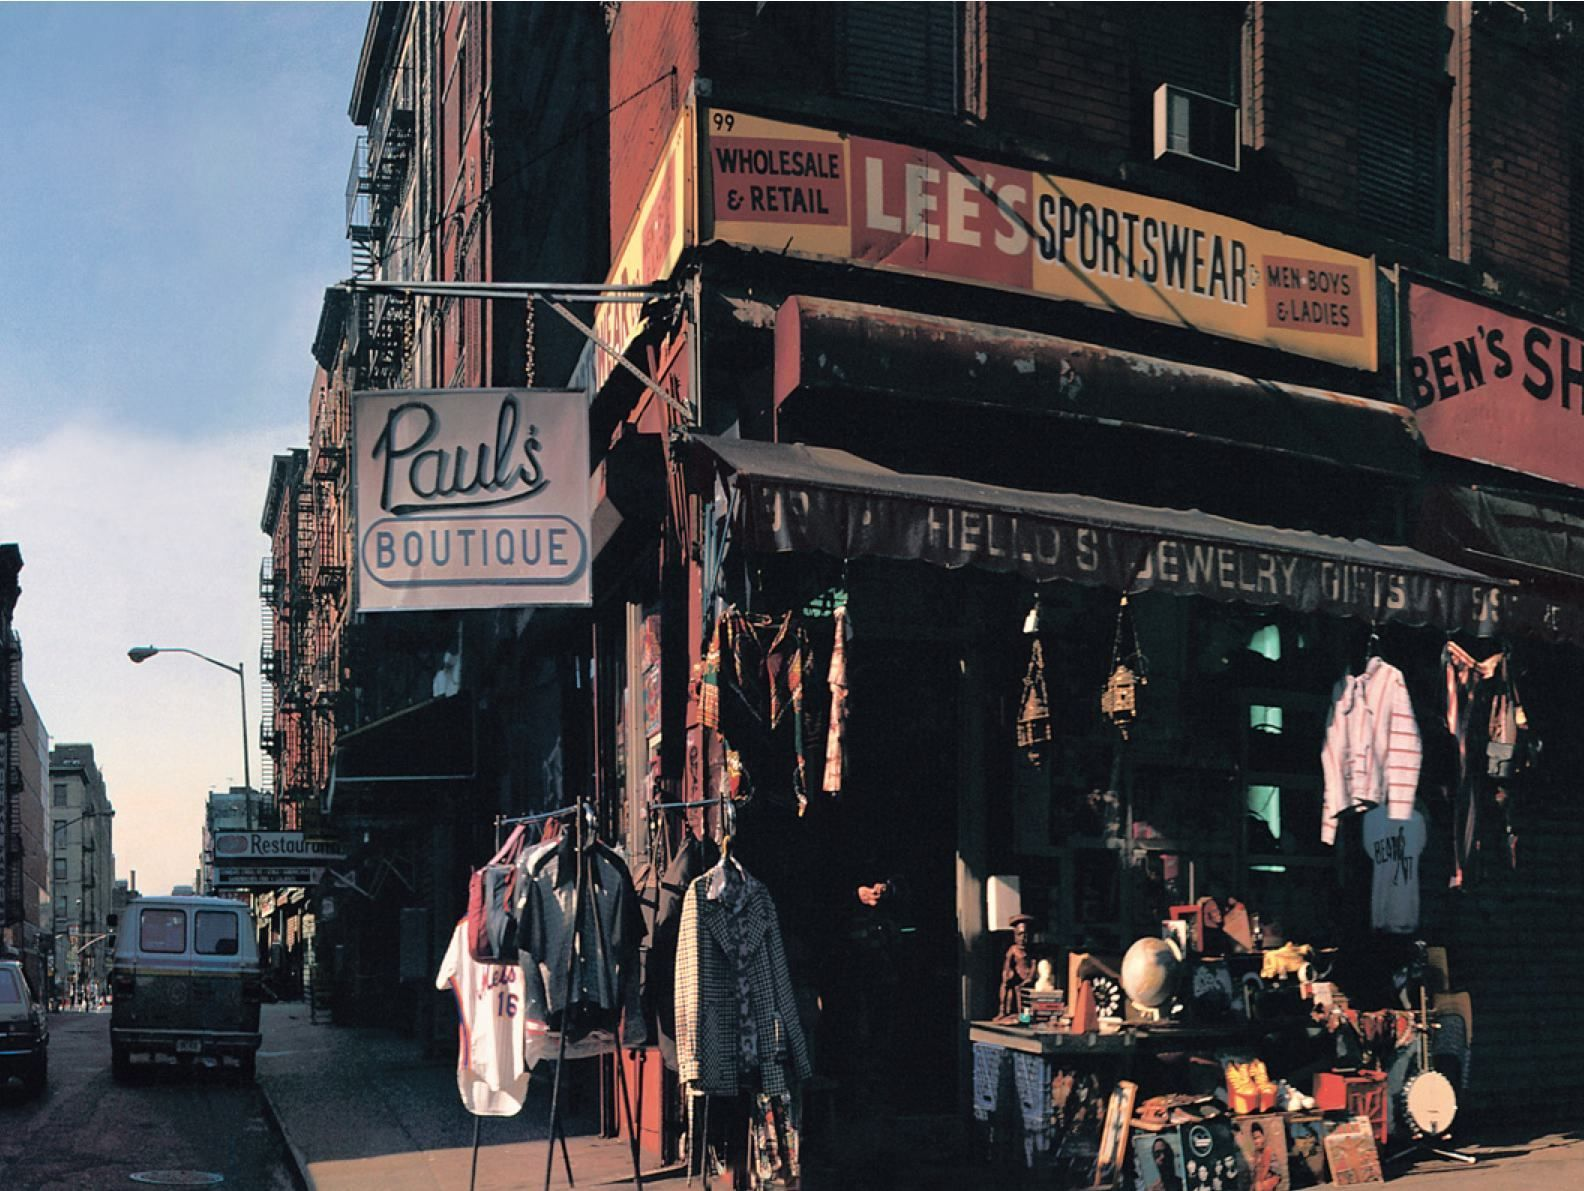 The Paul's Boutique cover.